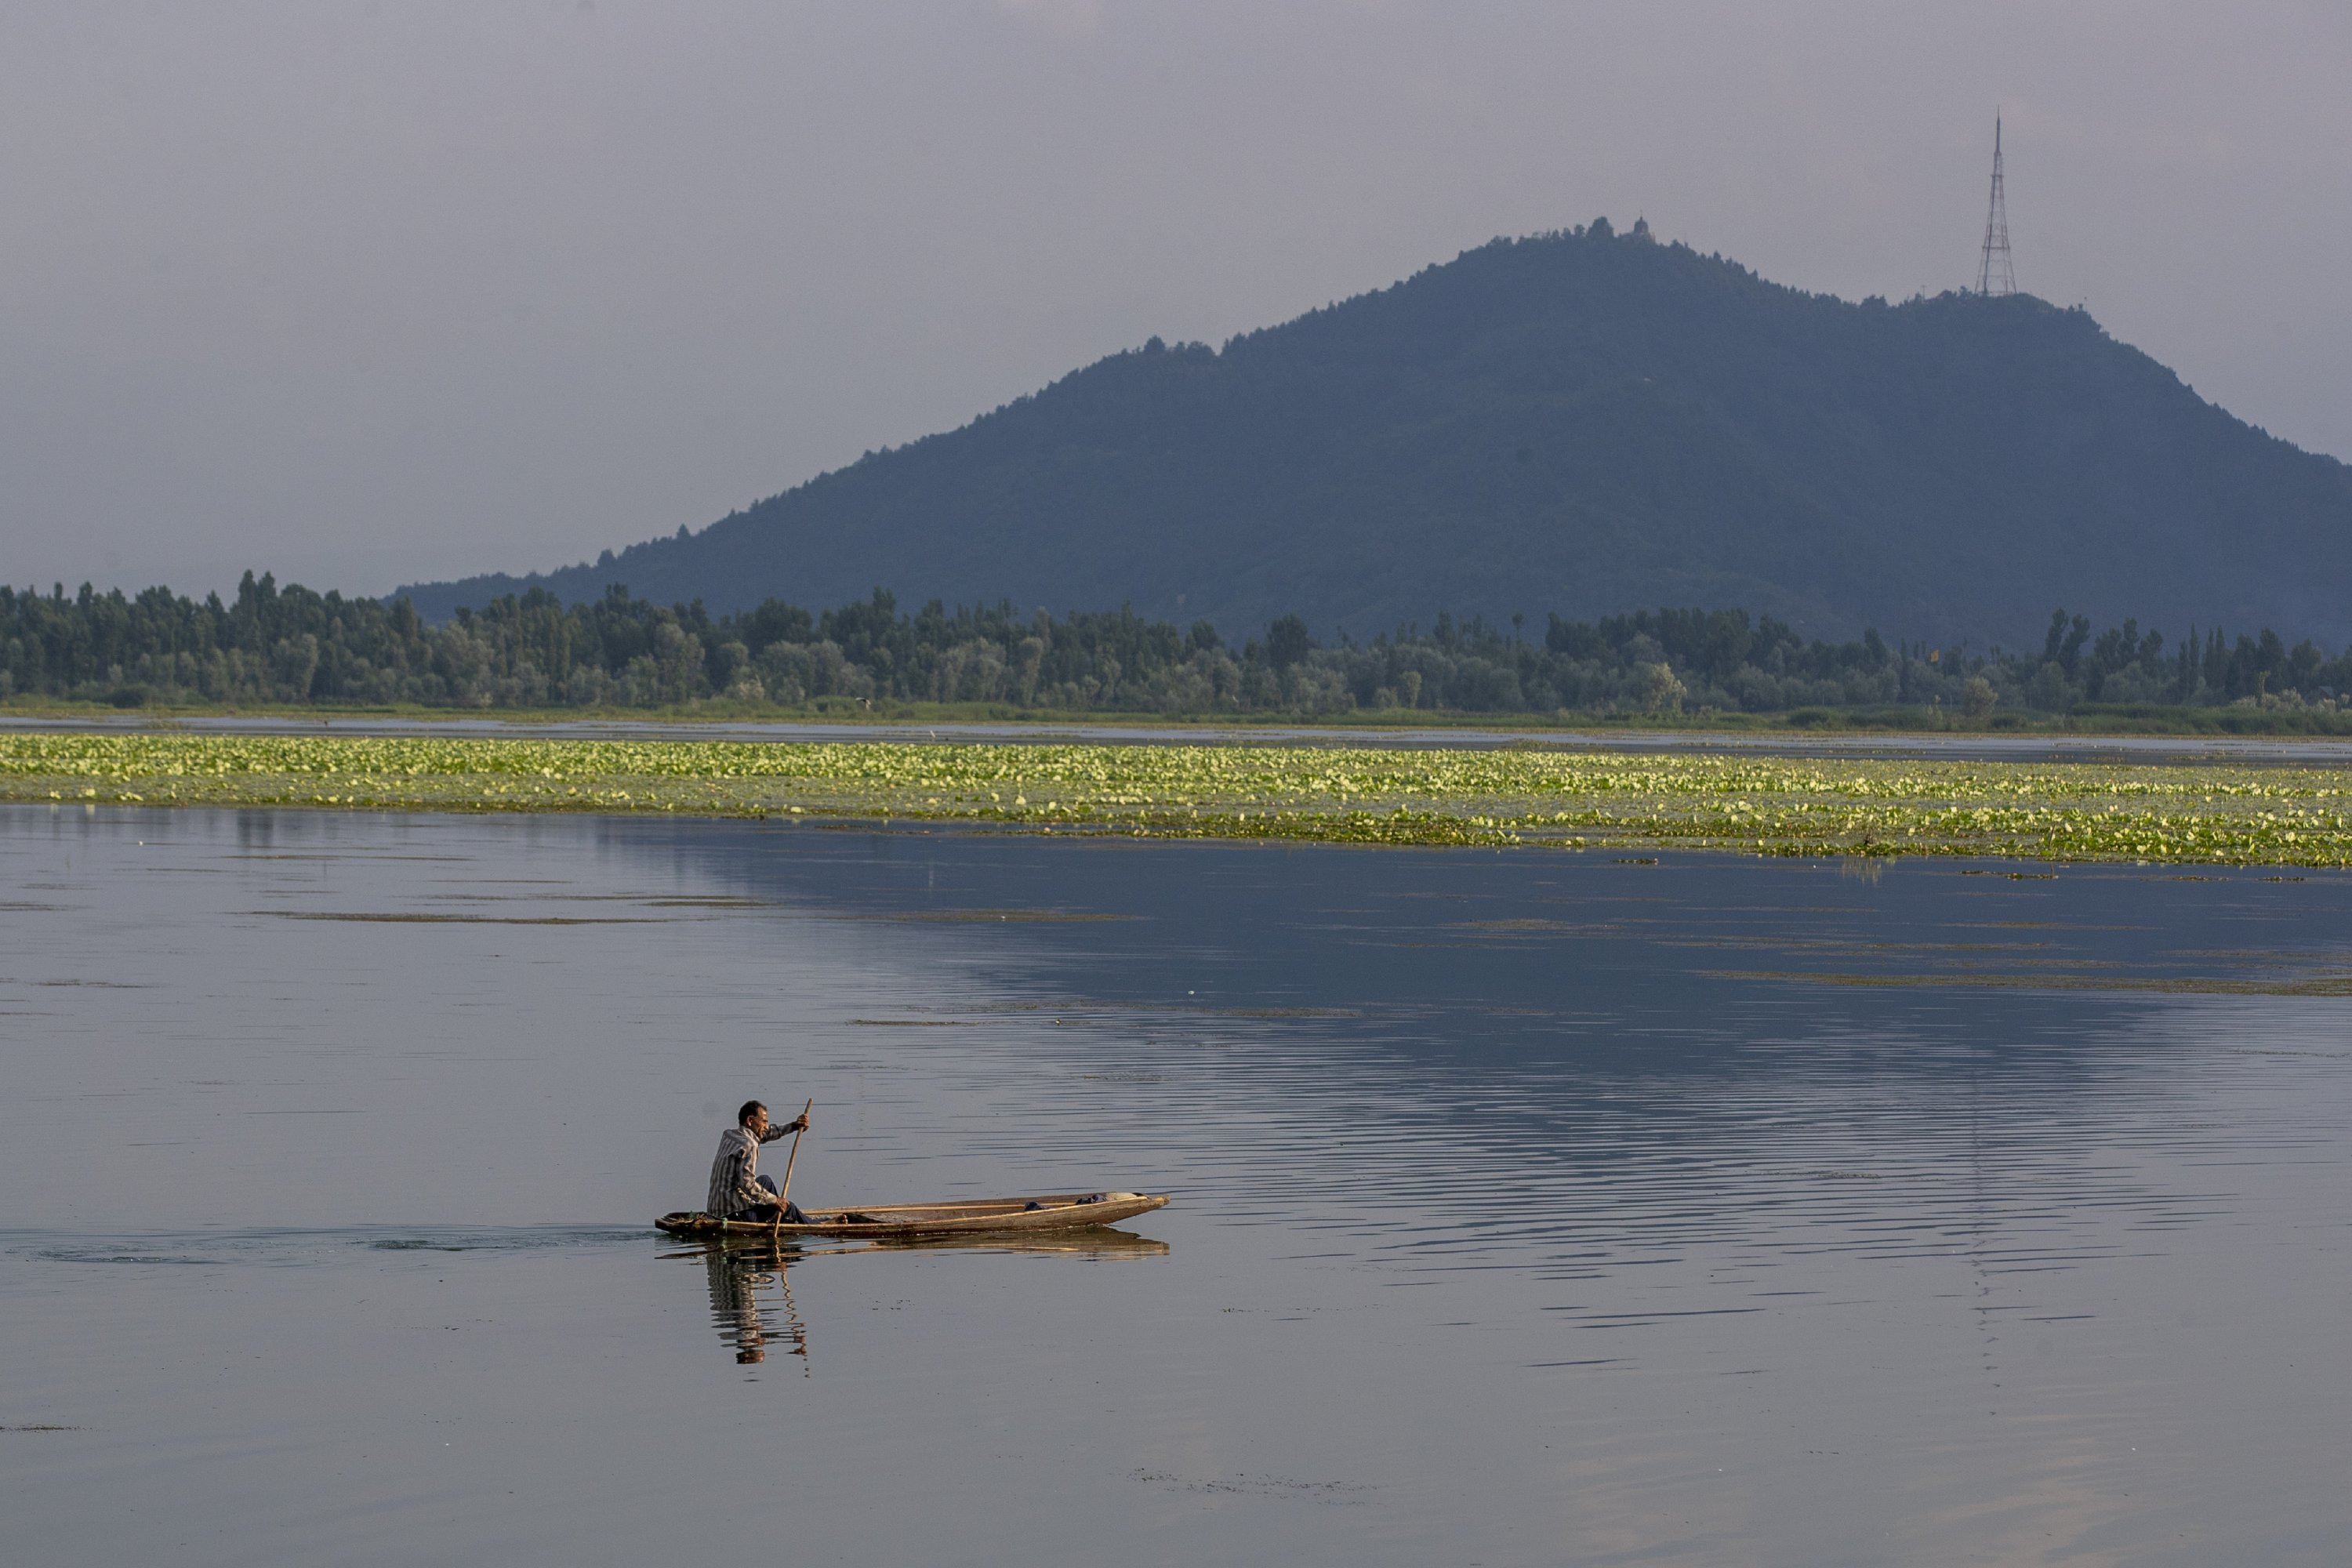 A Kashmiri man rows his Shikara, a traditional boat, as he heads home after a day's work on the Dal Lake on the outskirts of Srinagar, Indian-controlled Kashmir, July 3, 2021. (AP Photo)